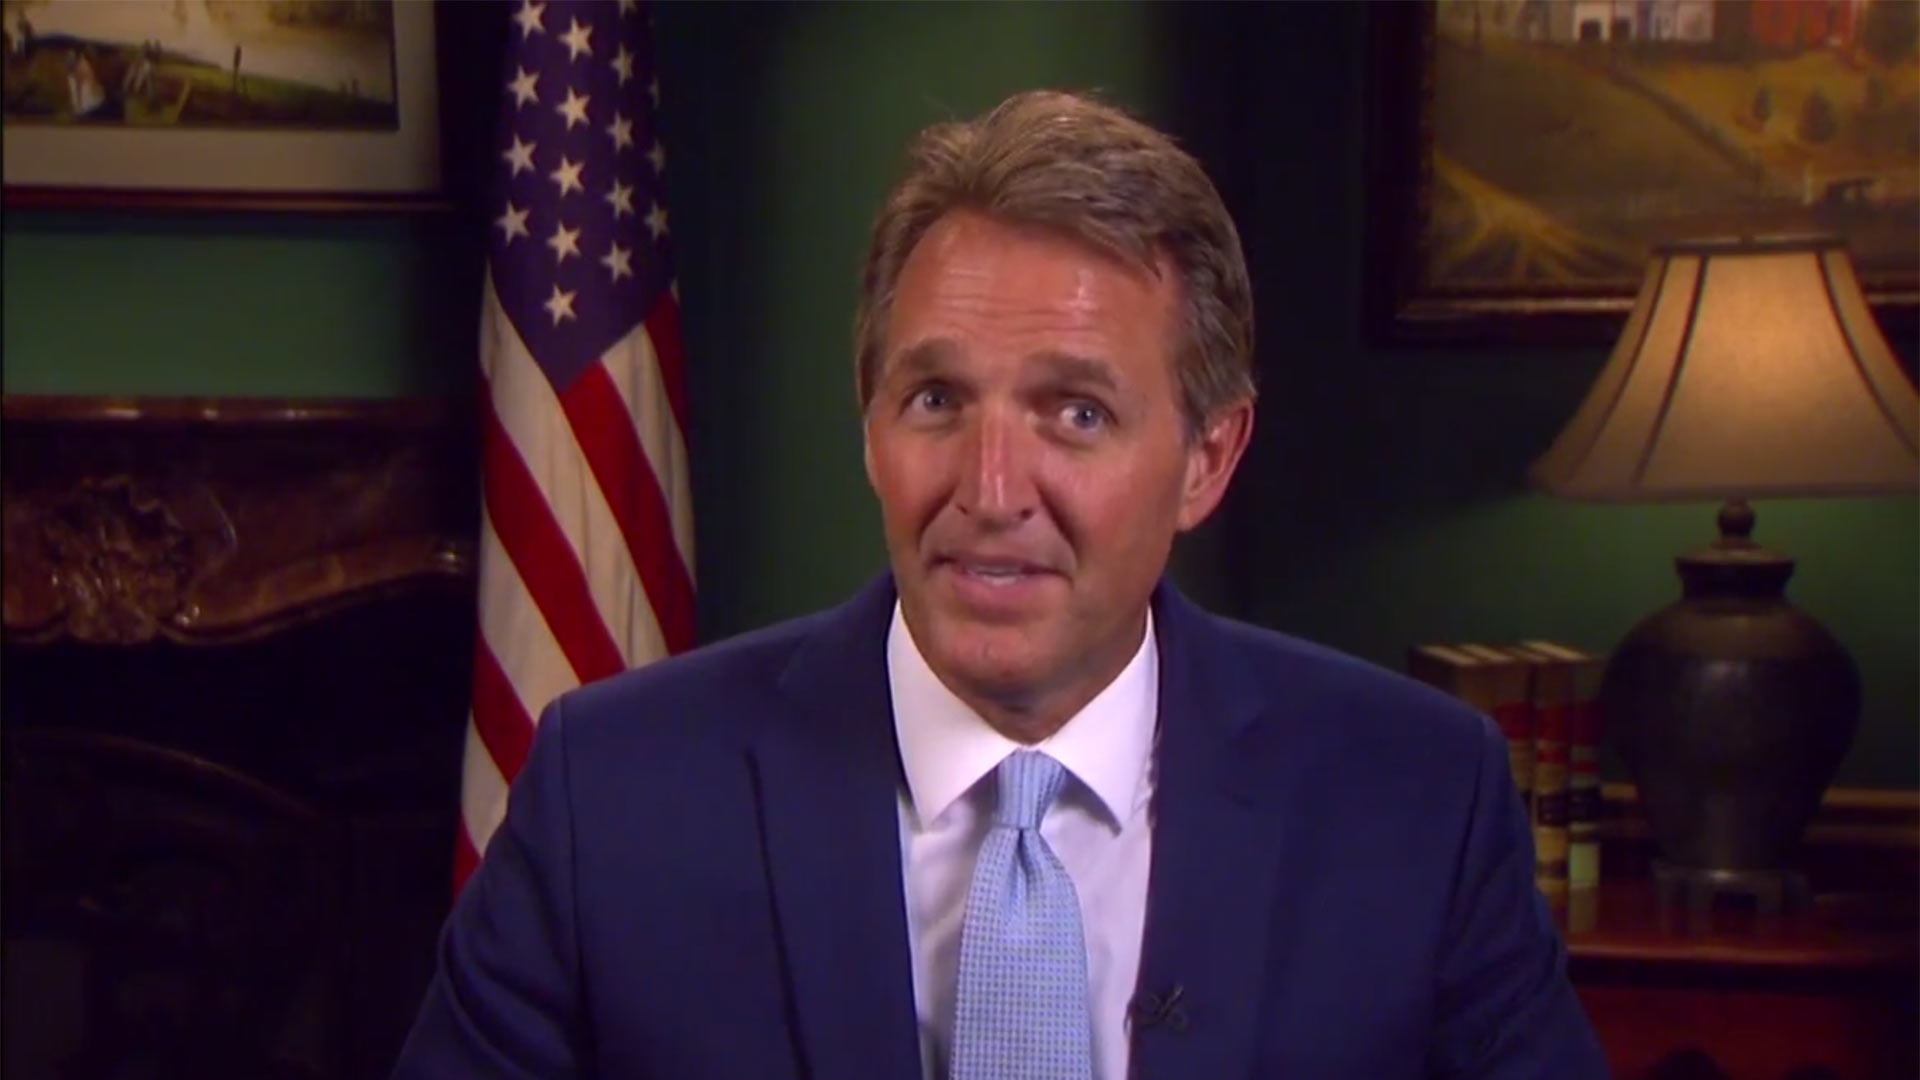 U.S. Sen. Jeff Flake in a YouTube video in which he speaks about NAFTA.